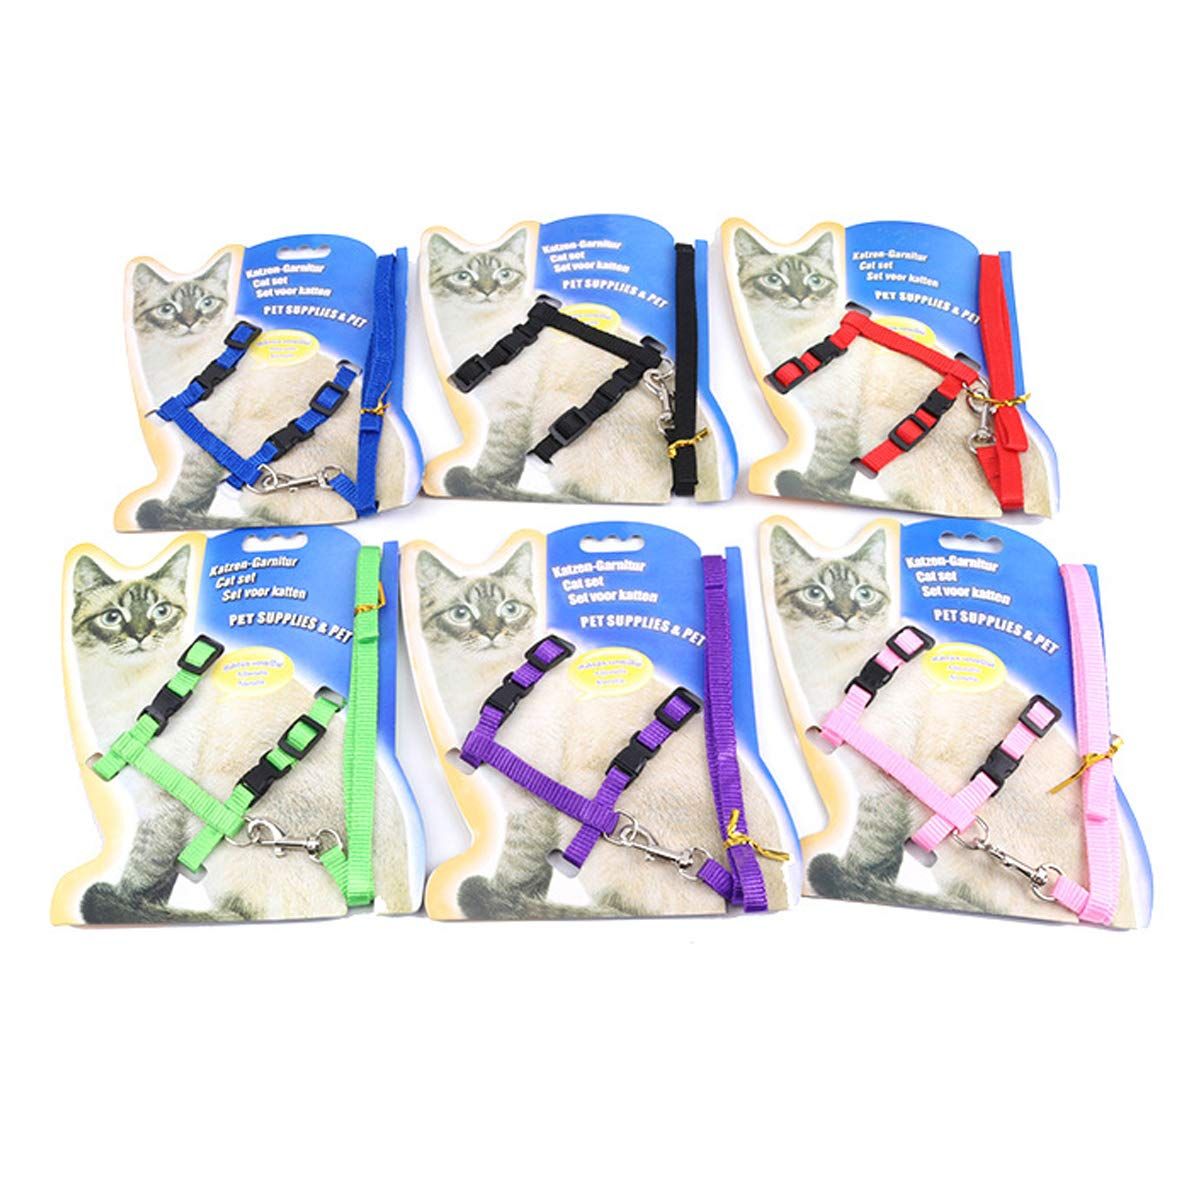 PETCUTE Cat Harness and Lead Adjustable Cat Harness and Leash set 2 Pieces kitten collar